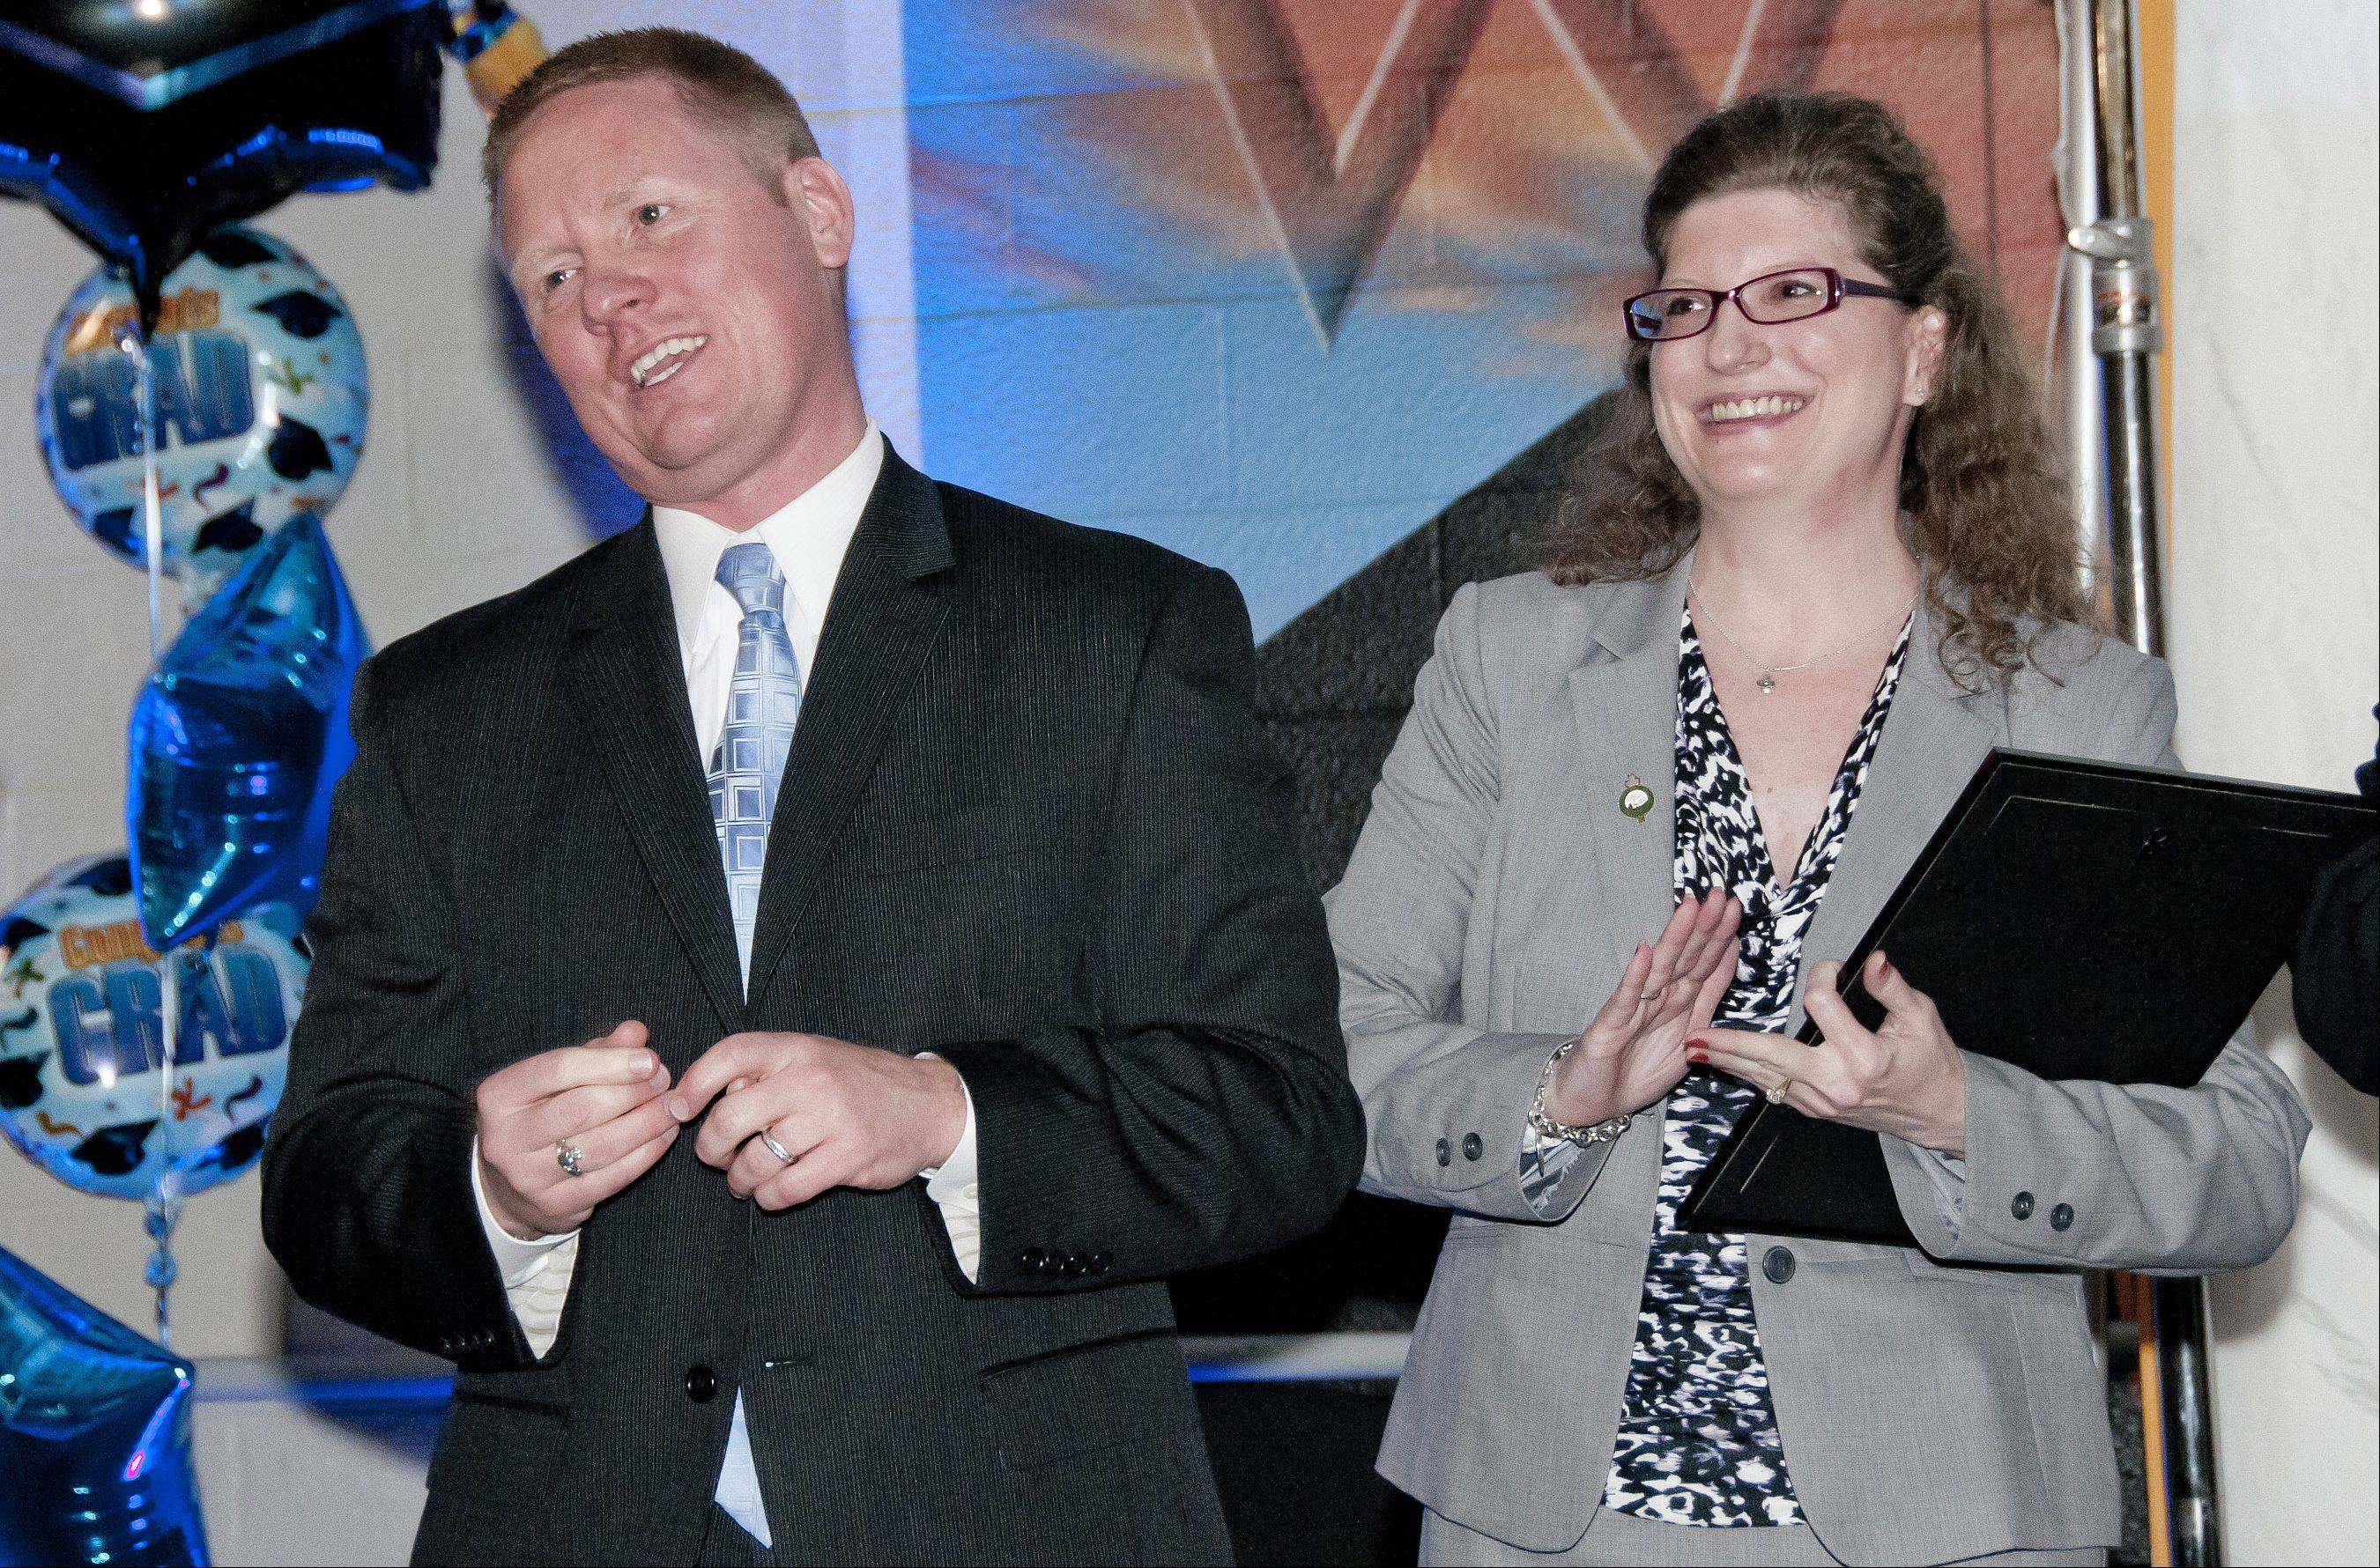 Villa Park Village President Deborah Bullwinkel applauds Willowbrook High School principal Dan Krause on being named Illinois Principal of the Year during a ceremony in May at the Villa Park school.